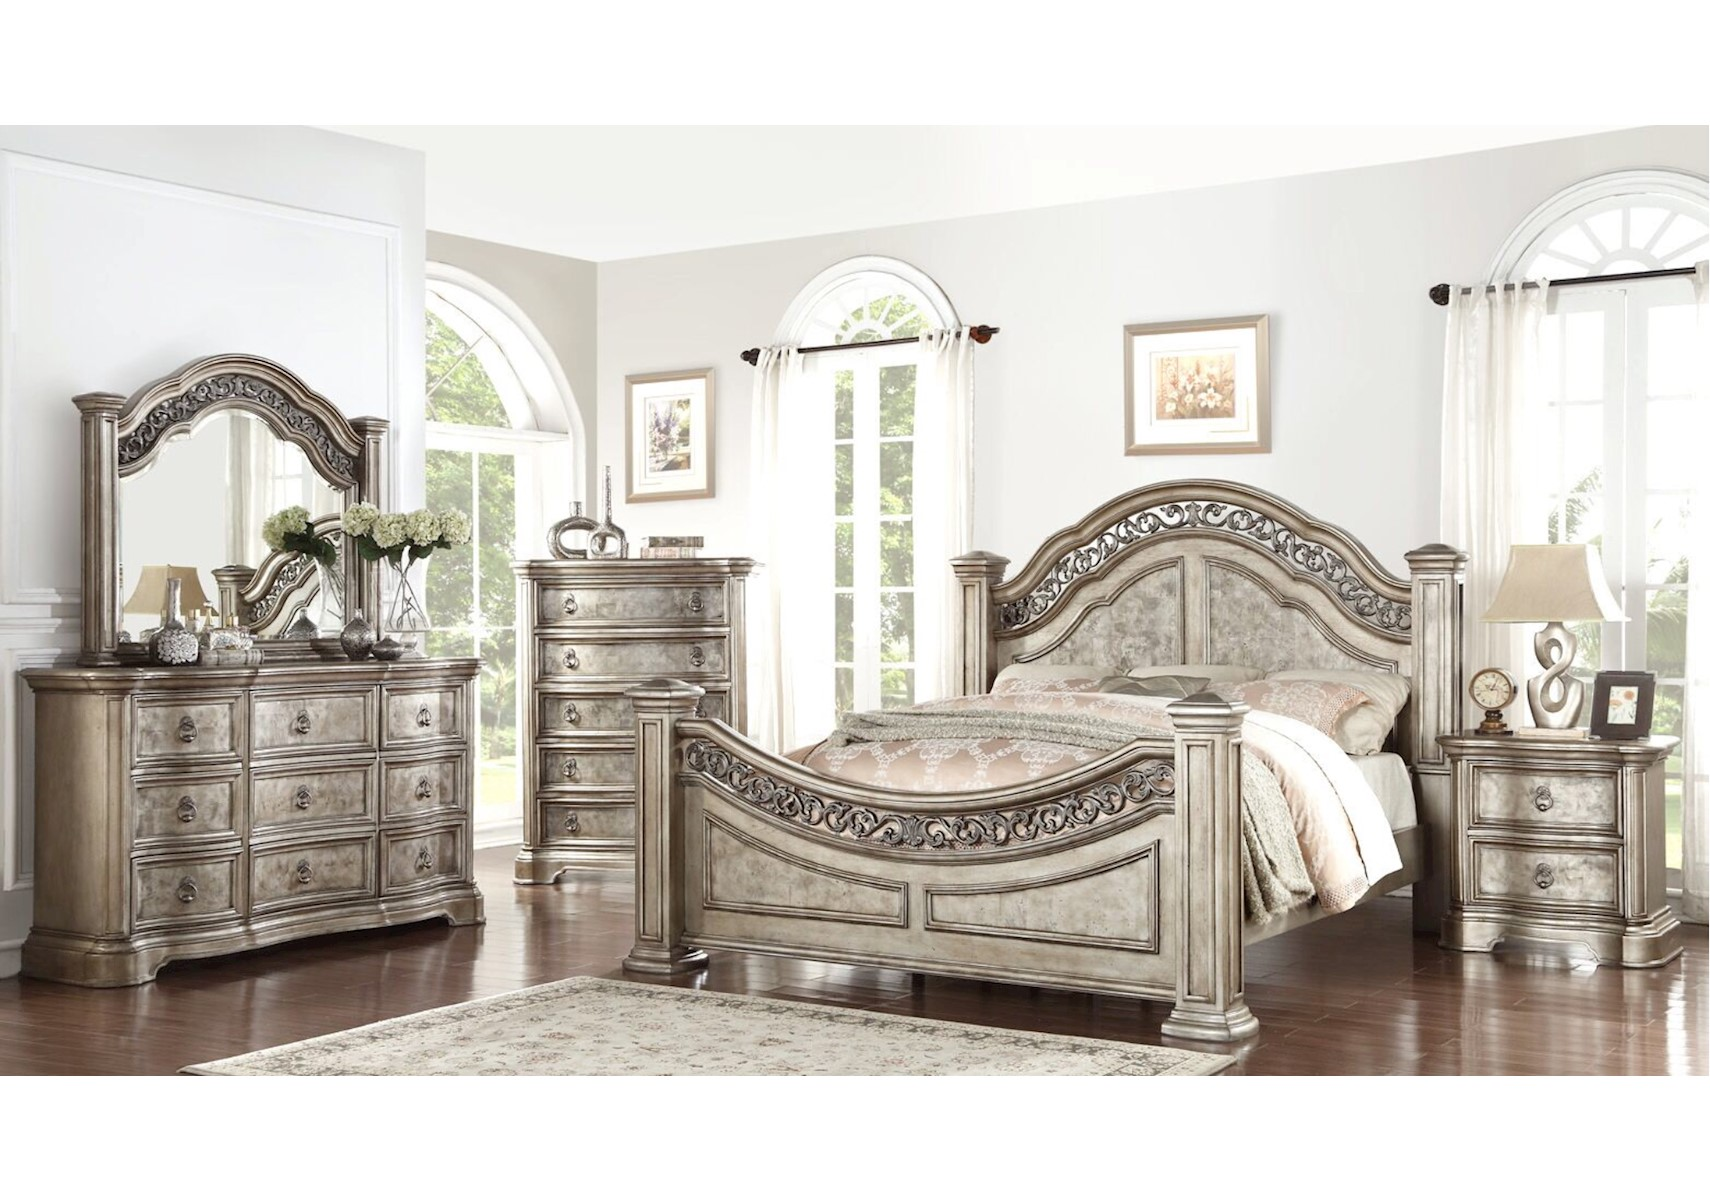 Lacks | Victoria 4 Pc King Bedroom Set